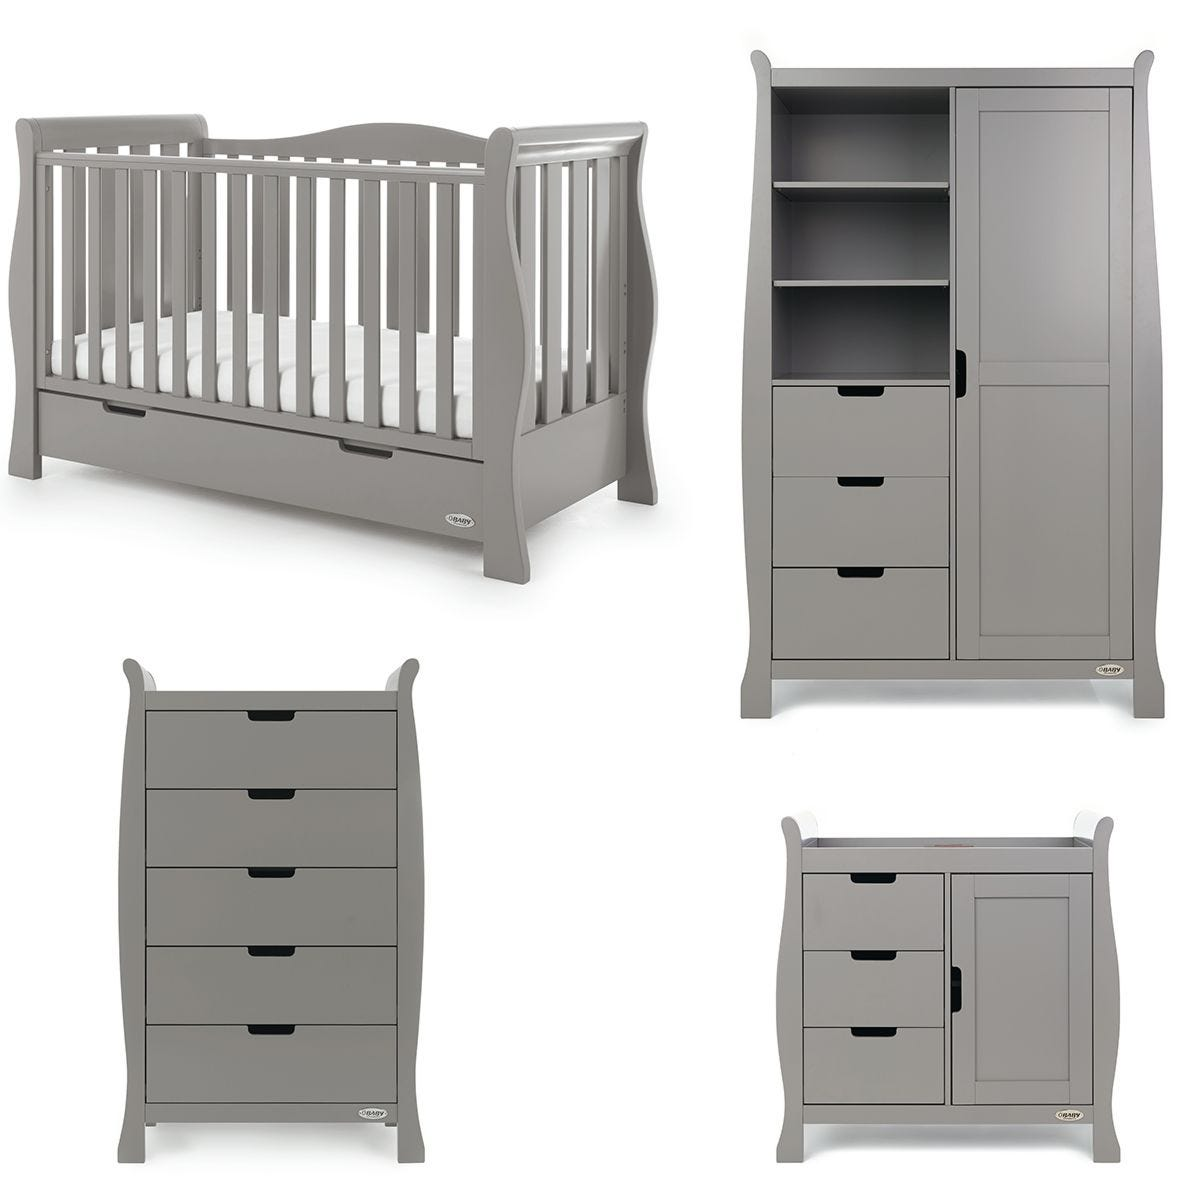 Obaby Stamford Luxe Sleigh 4 Piece Room Set - Taupe Grey